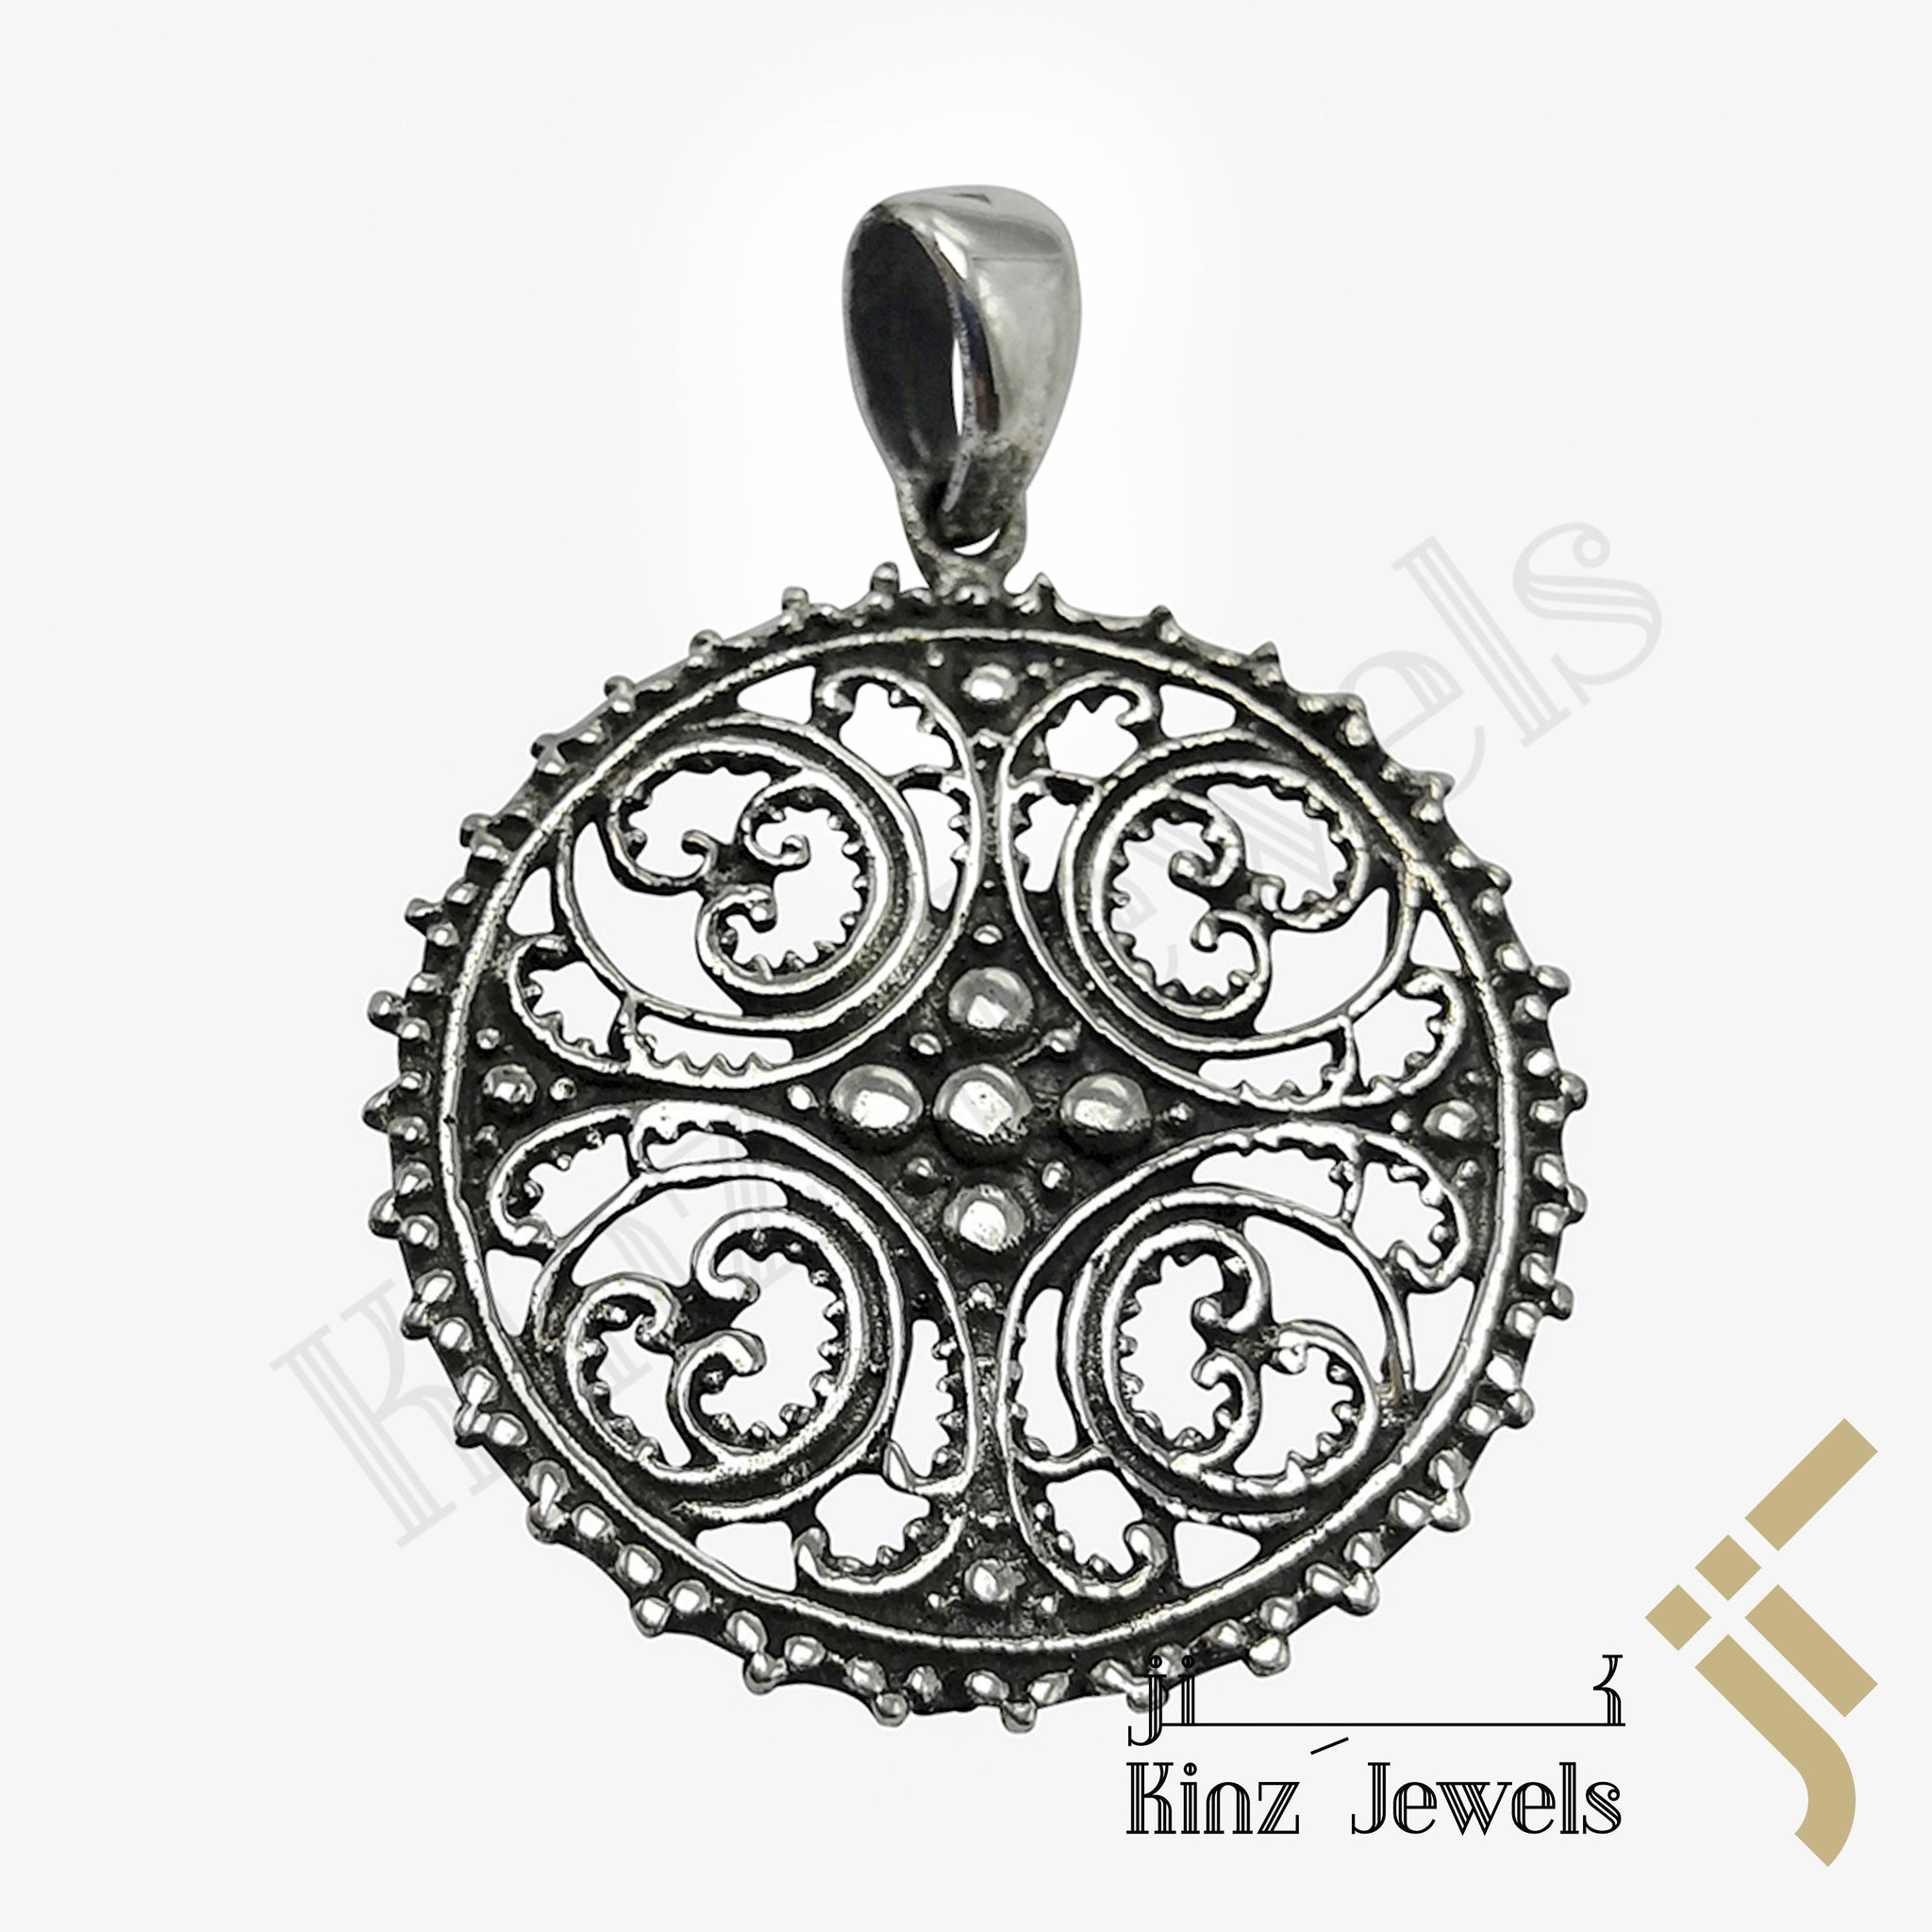 kinzjewels - Sterling Silver Antique Spiritual Pattern Pendant